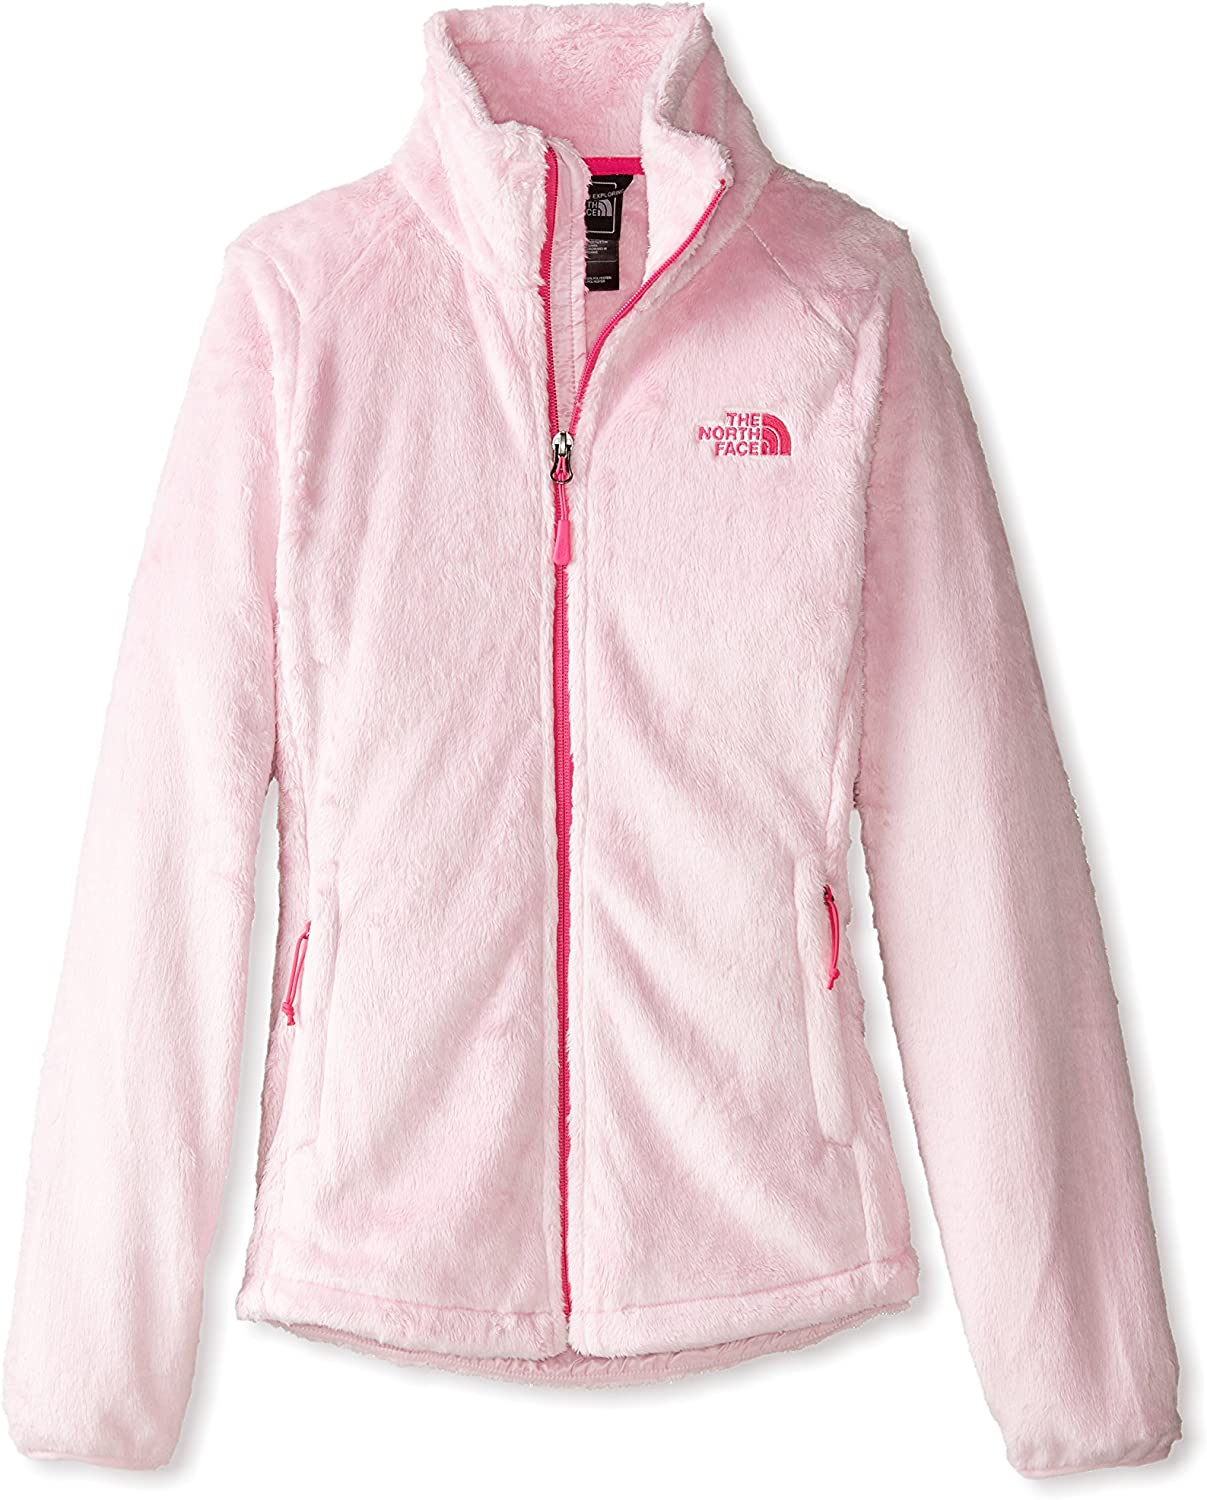 The North Face Osito 2 Jacket Womens Pink Lady S